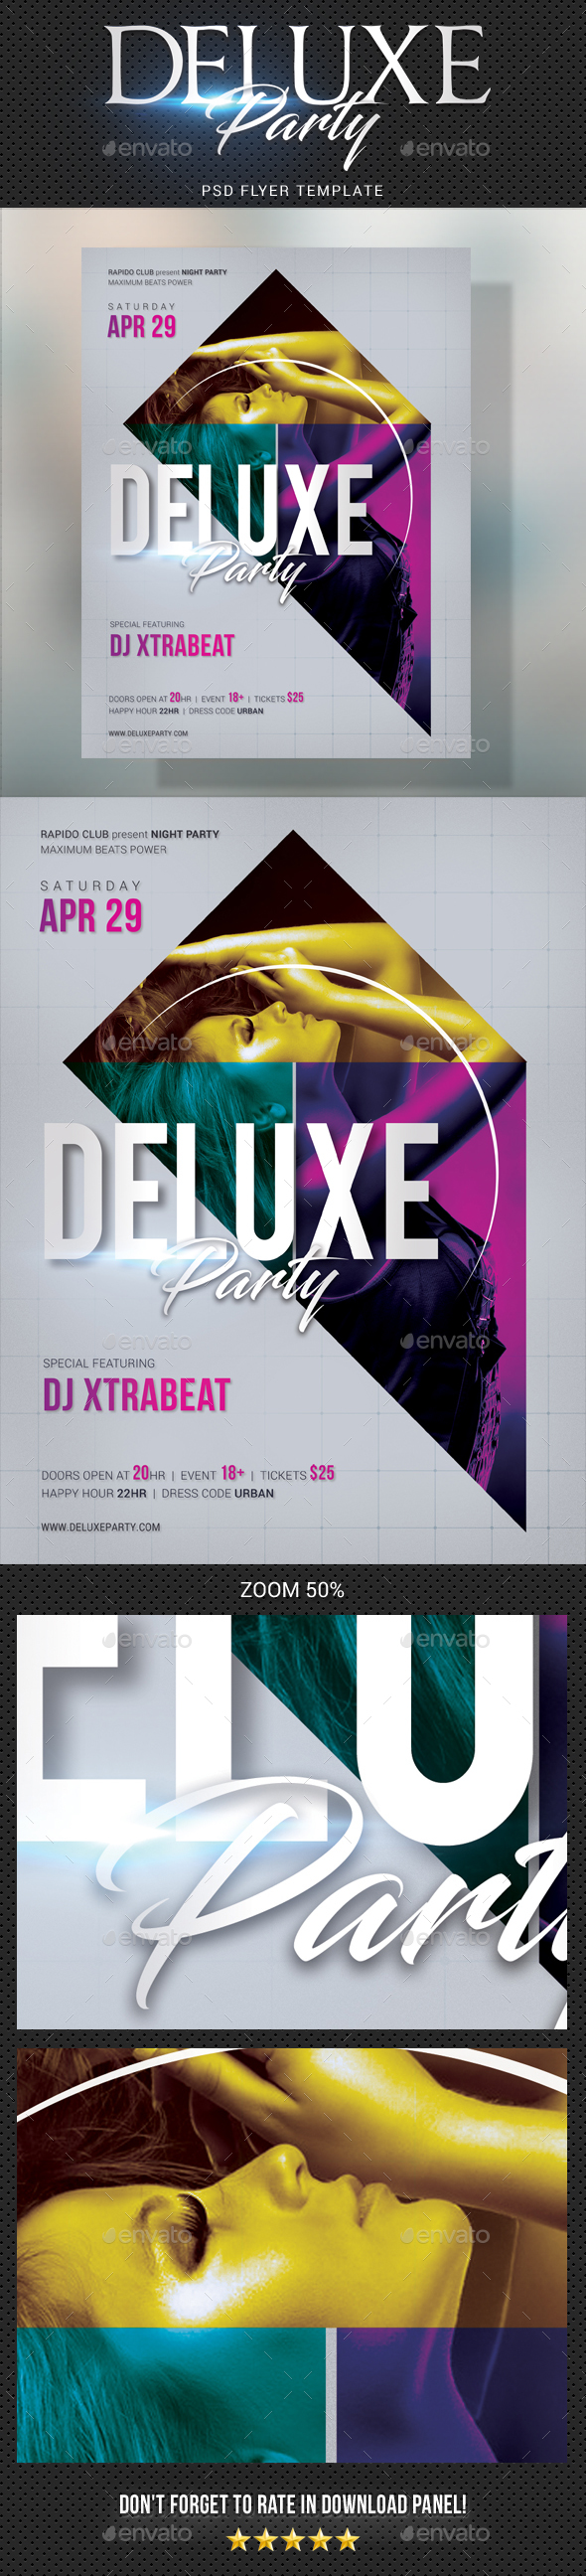 Deluxe Dj Party Flyer 02 - Clubs & Parties Events